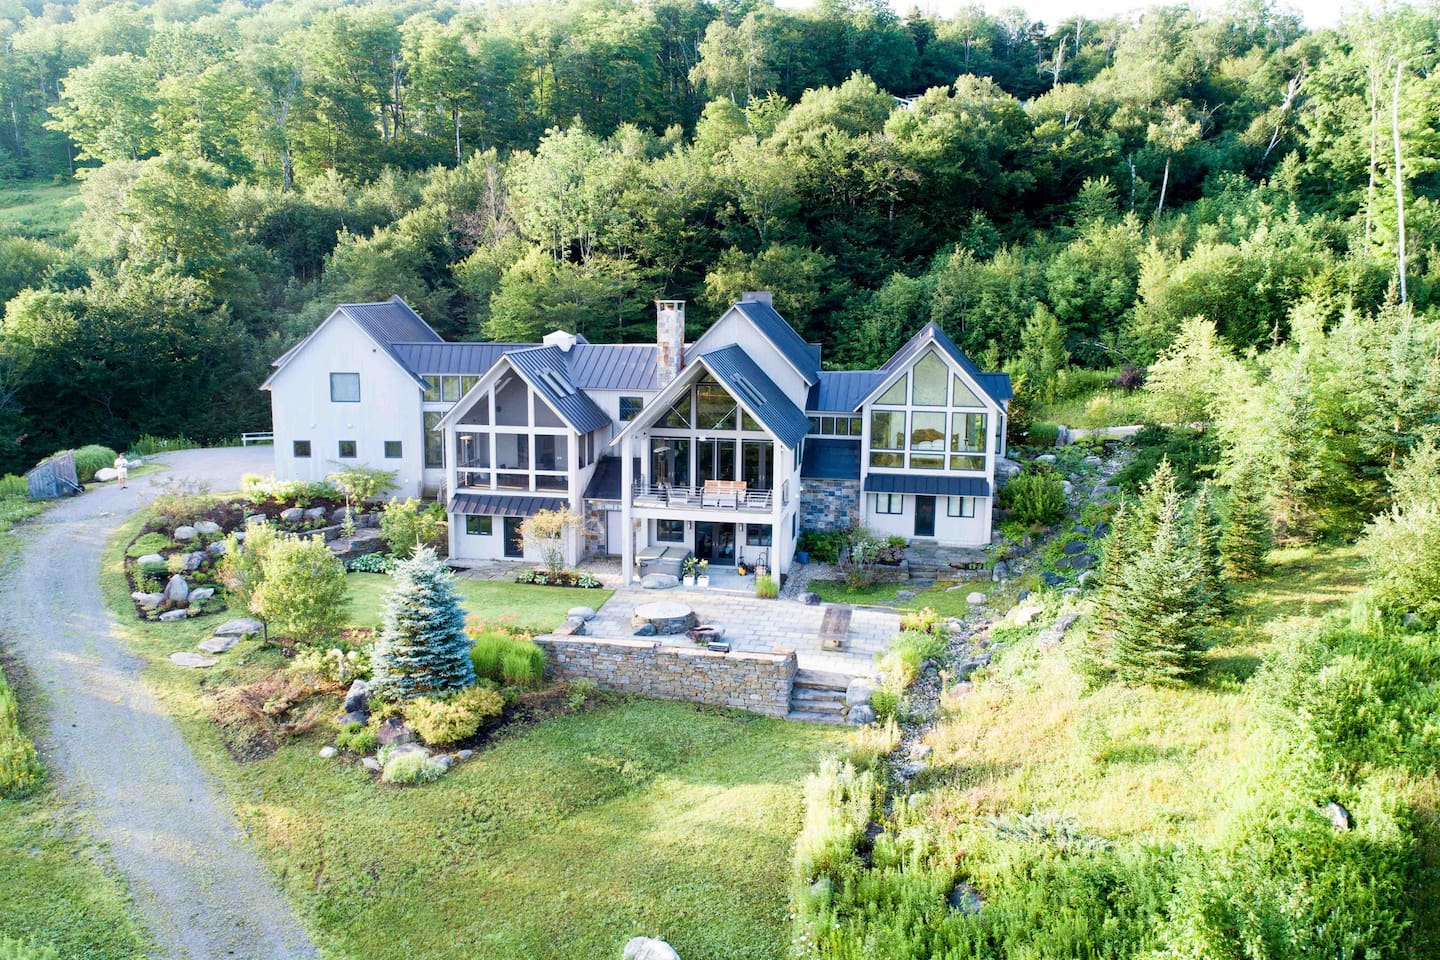 View from the rear of the property that's secluded in 46 acres